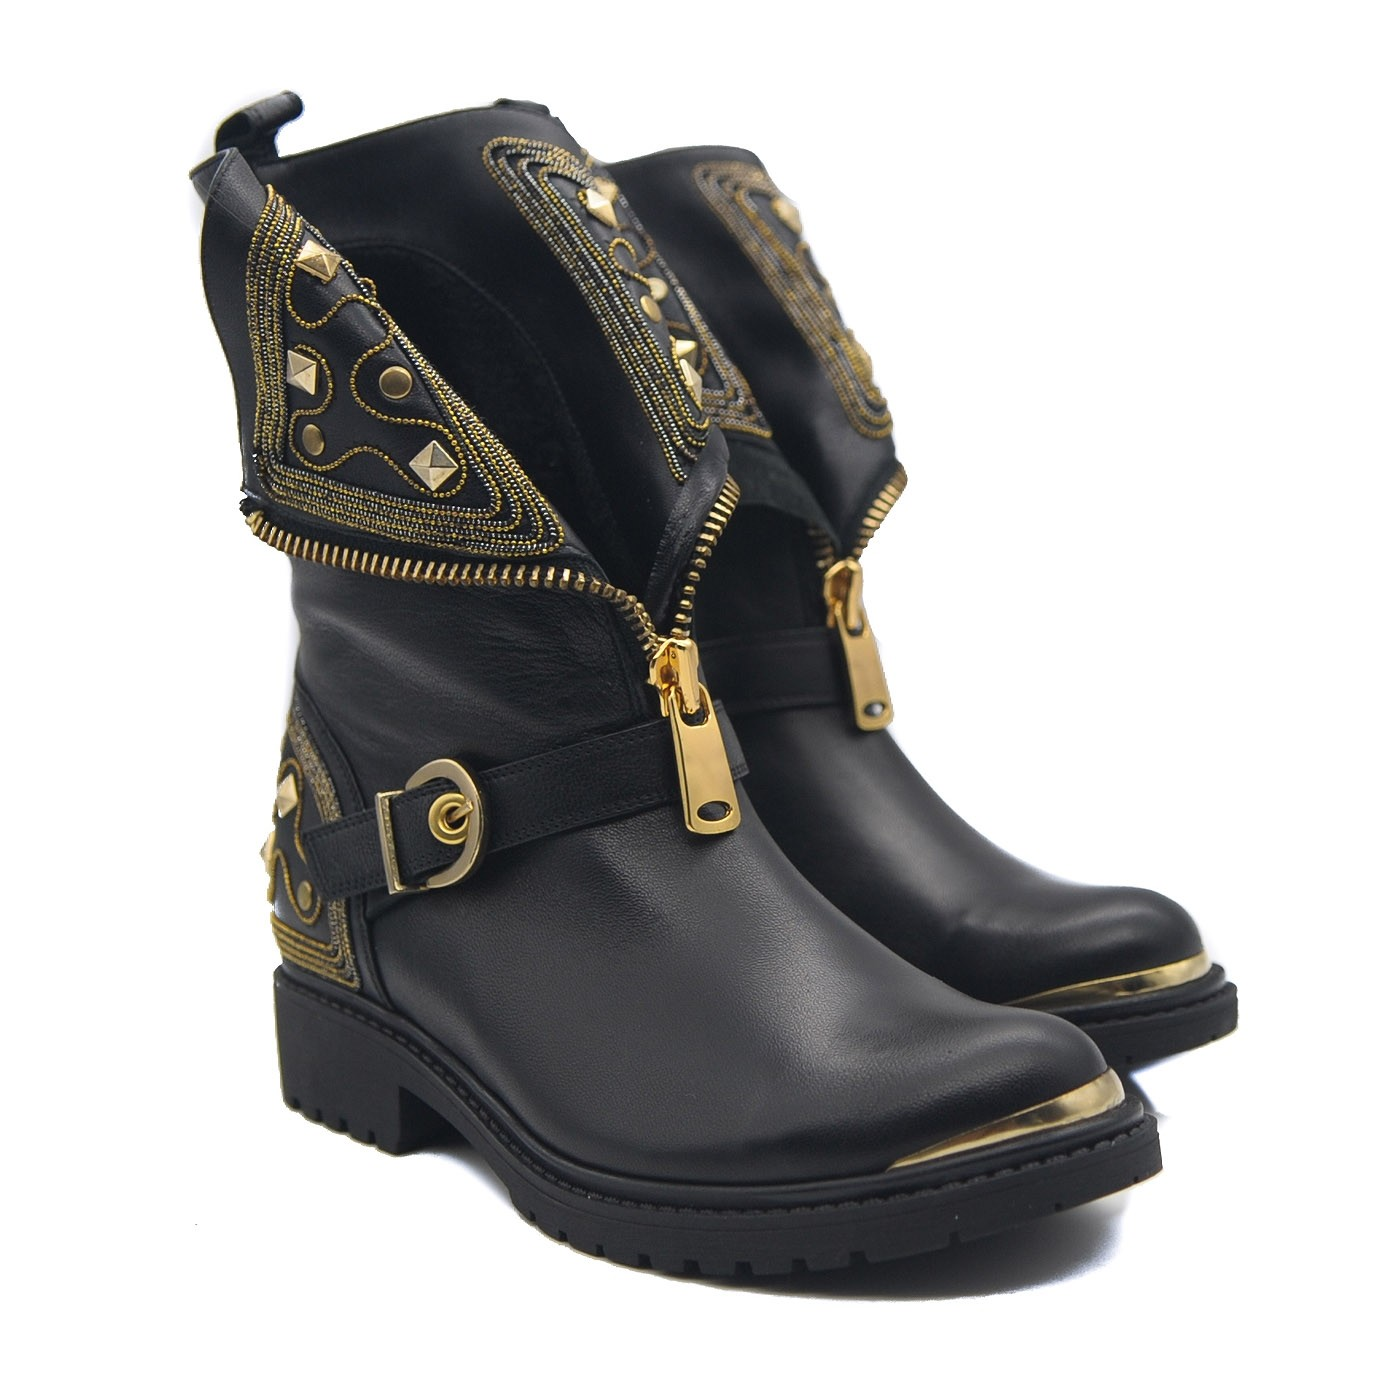 Biker Boots Black Leather Chic Gold Stud Embellished Front and Side Zip with Side Buckle